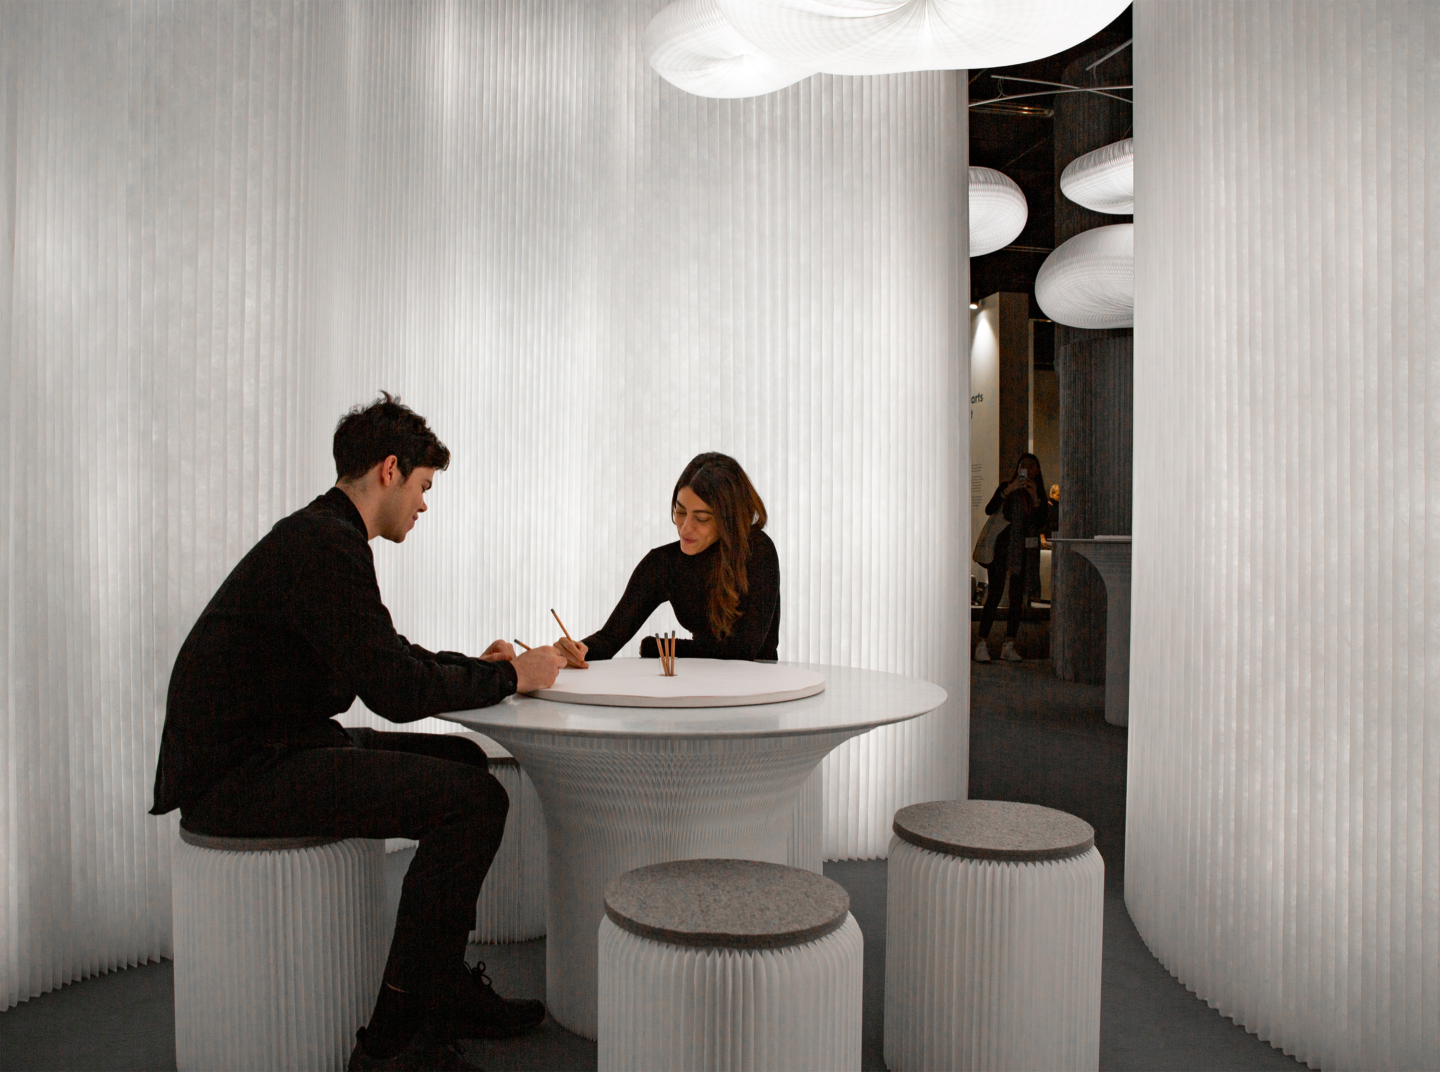 aluminum room divider wall back lit with led lights, cloud pendant light led, stools and cantilever table by molo